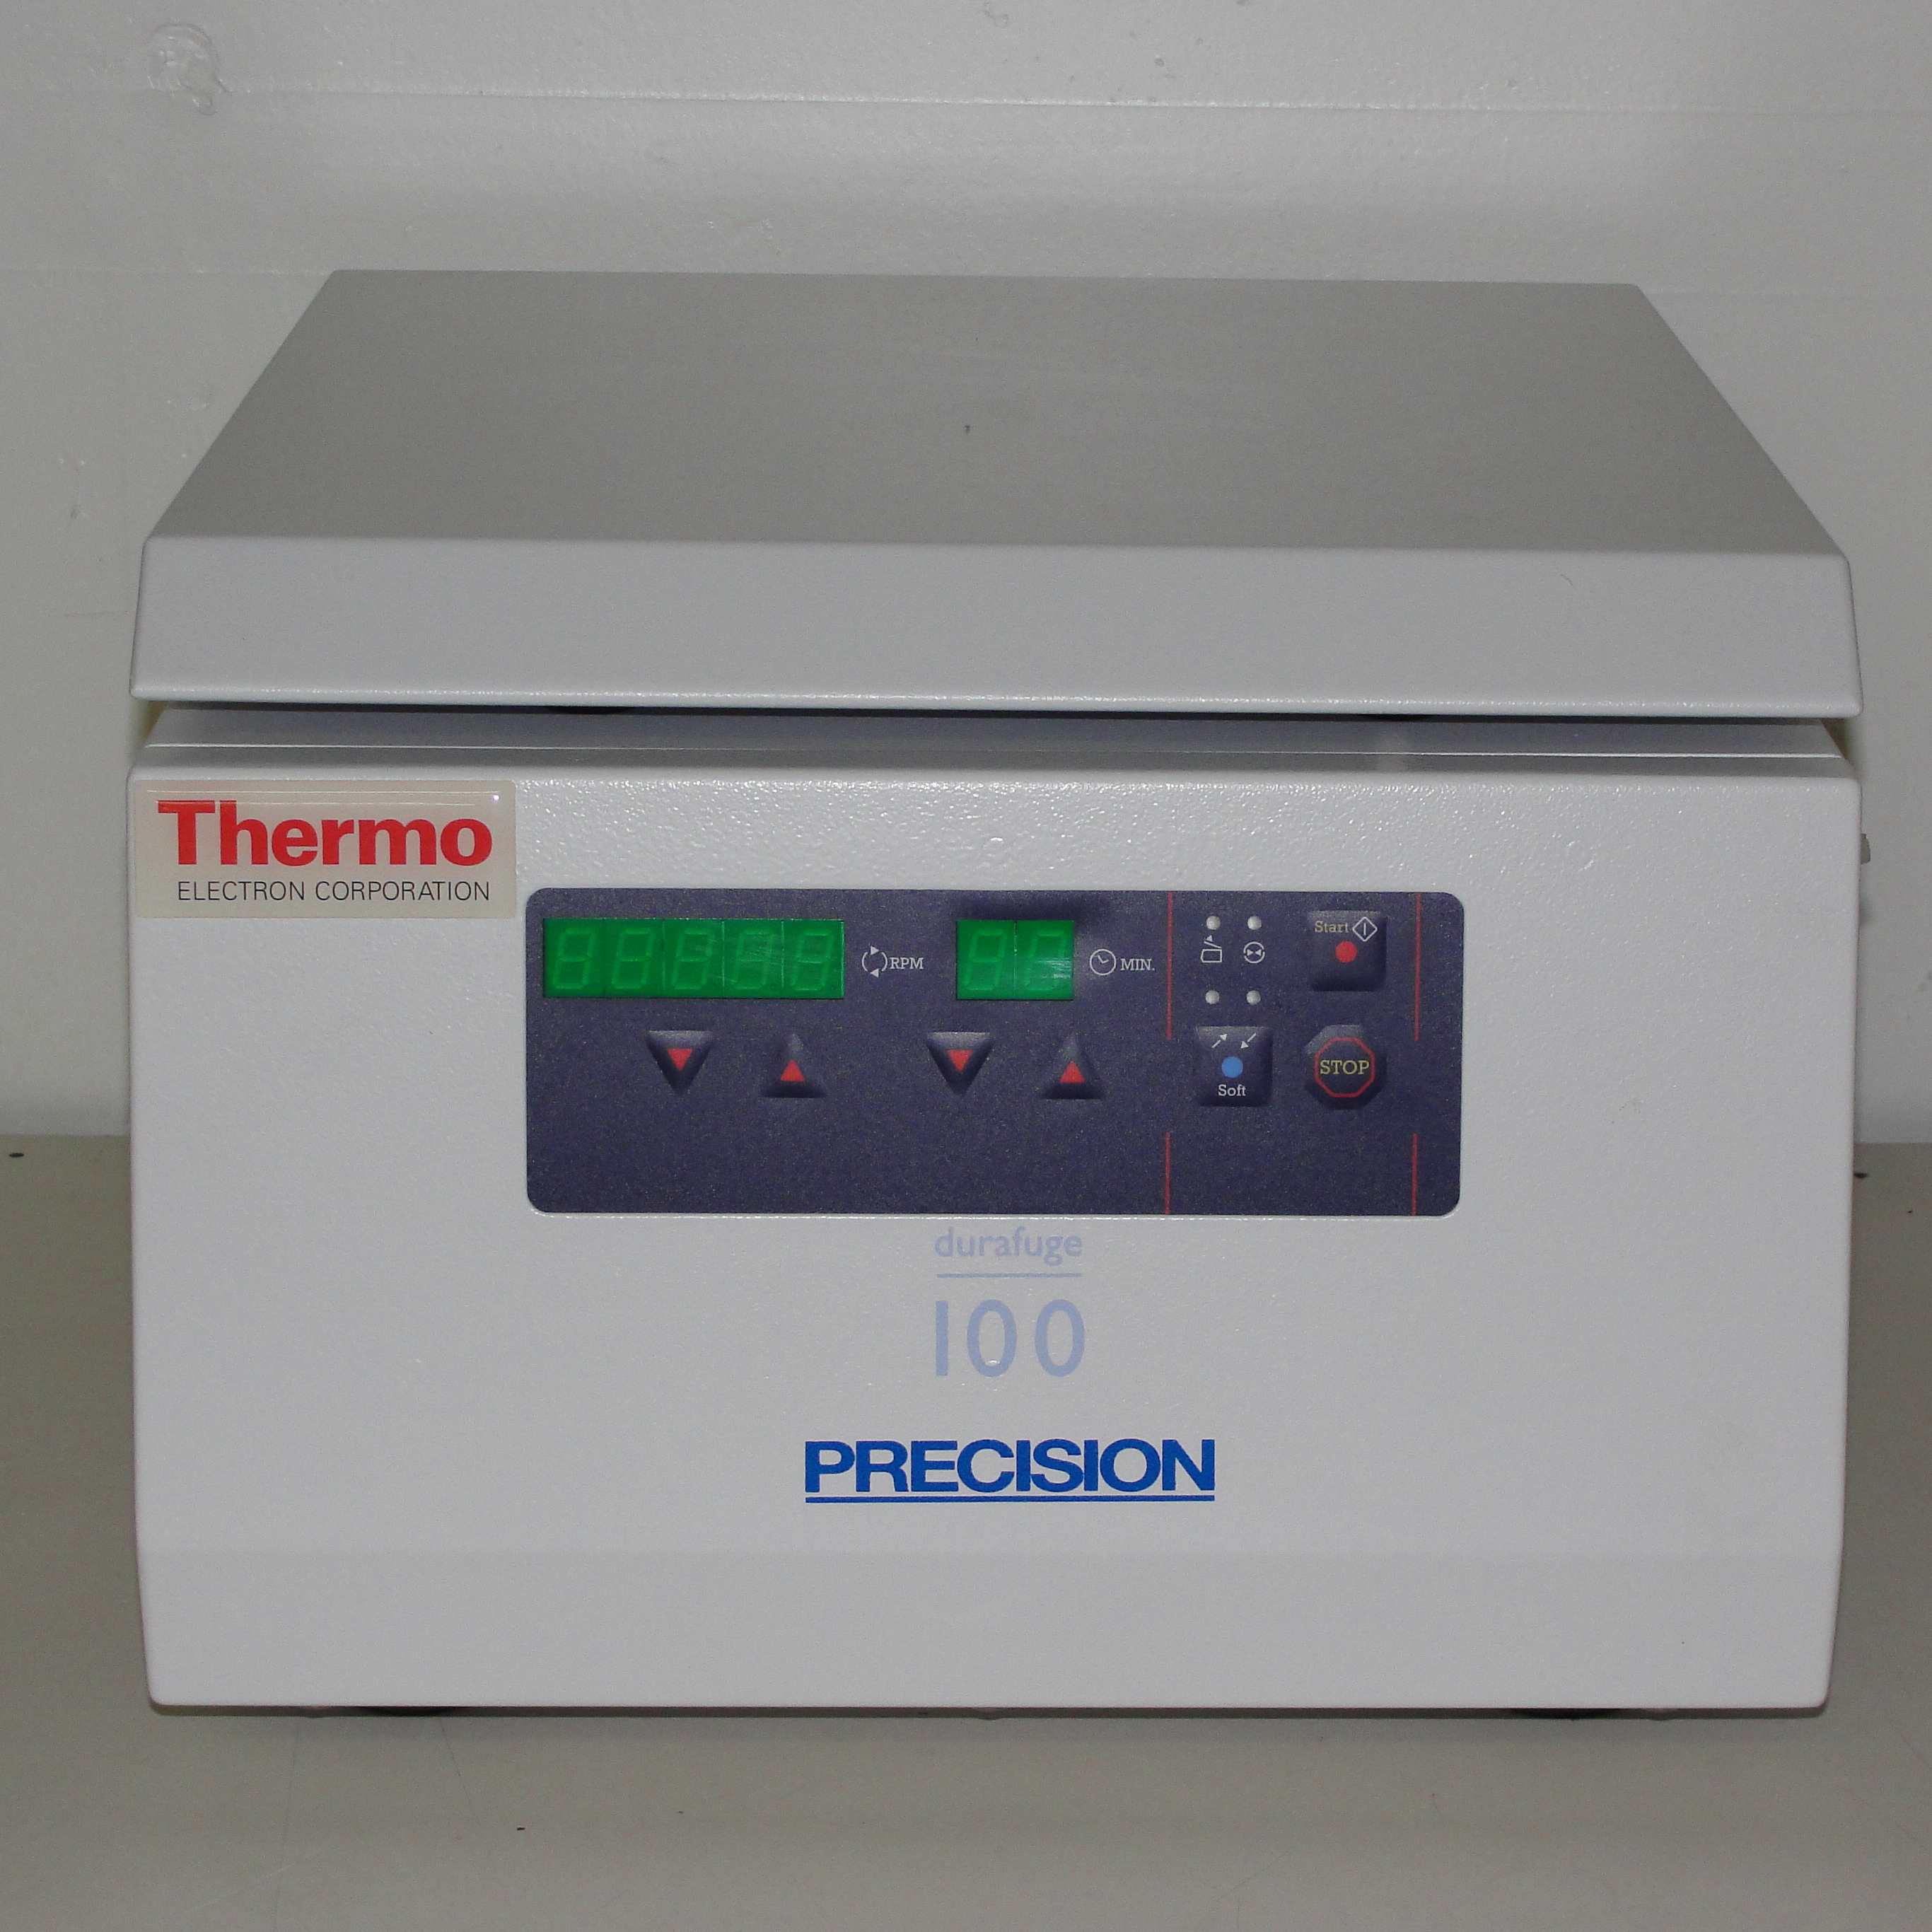 Thermo Durafuge 100 Precision Centrifuge Image